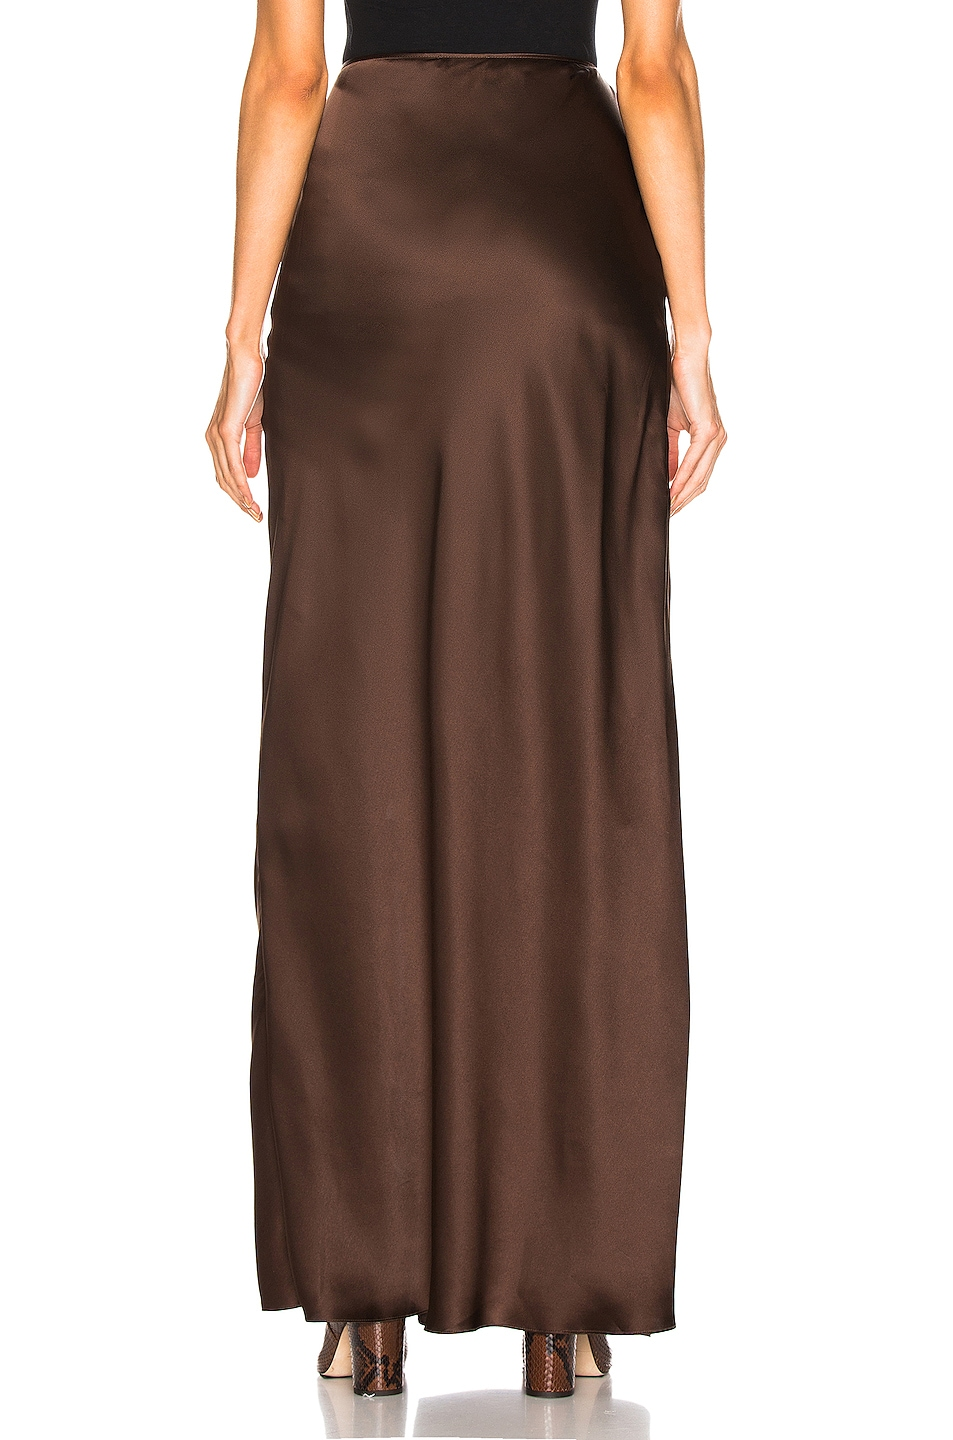 Image 4 of SABLYN Isabella Slit Skirt in Chocolate